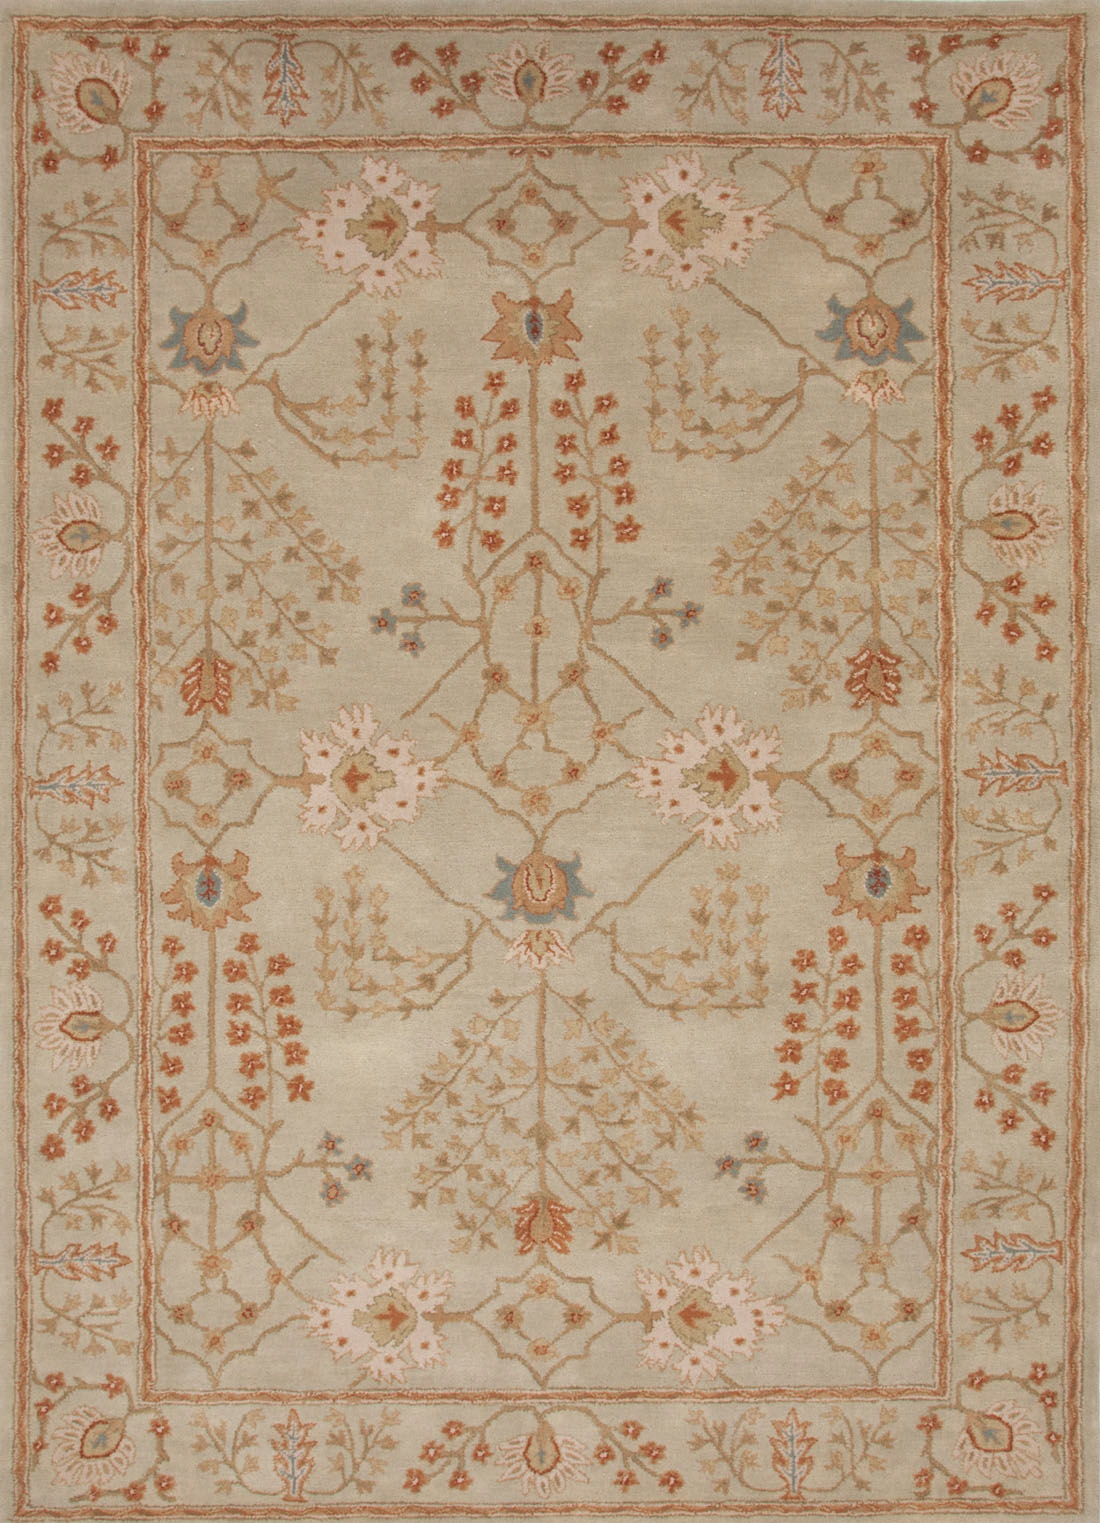 Jaipur Rugs Floor Coverings Hand Tufted Arts And Craft Pattern Wool